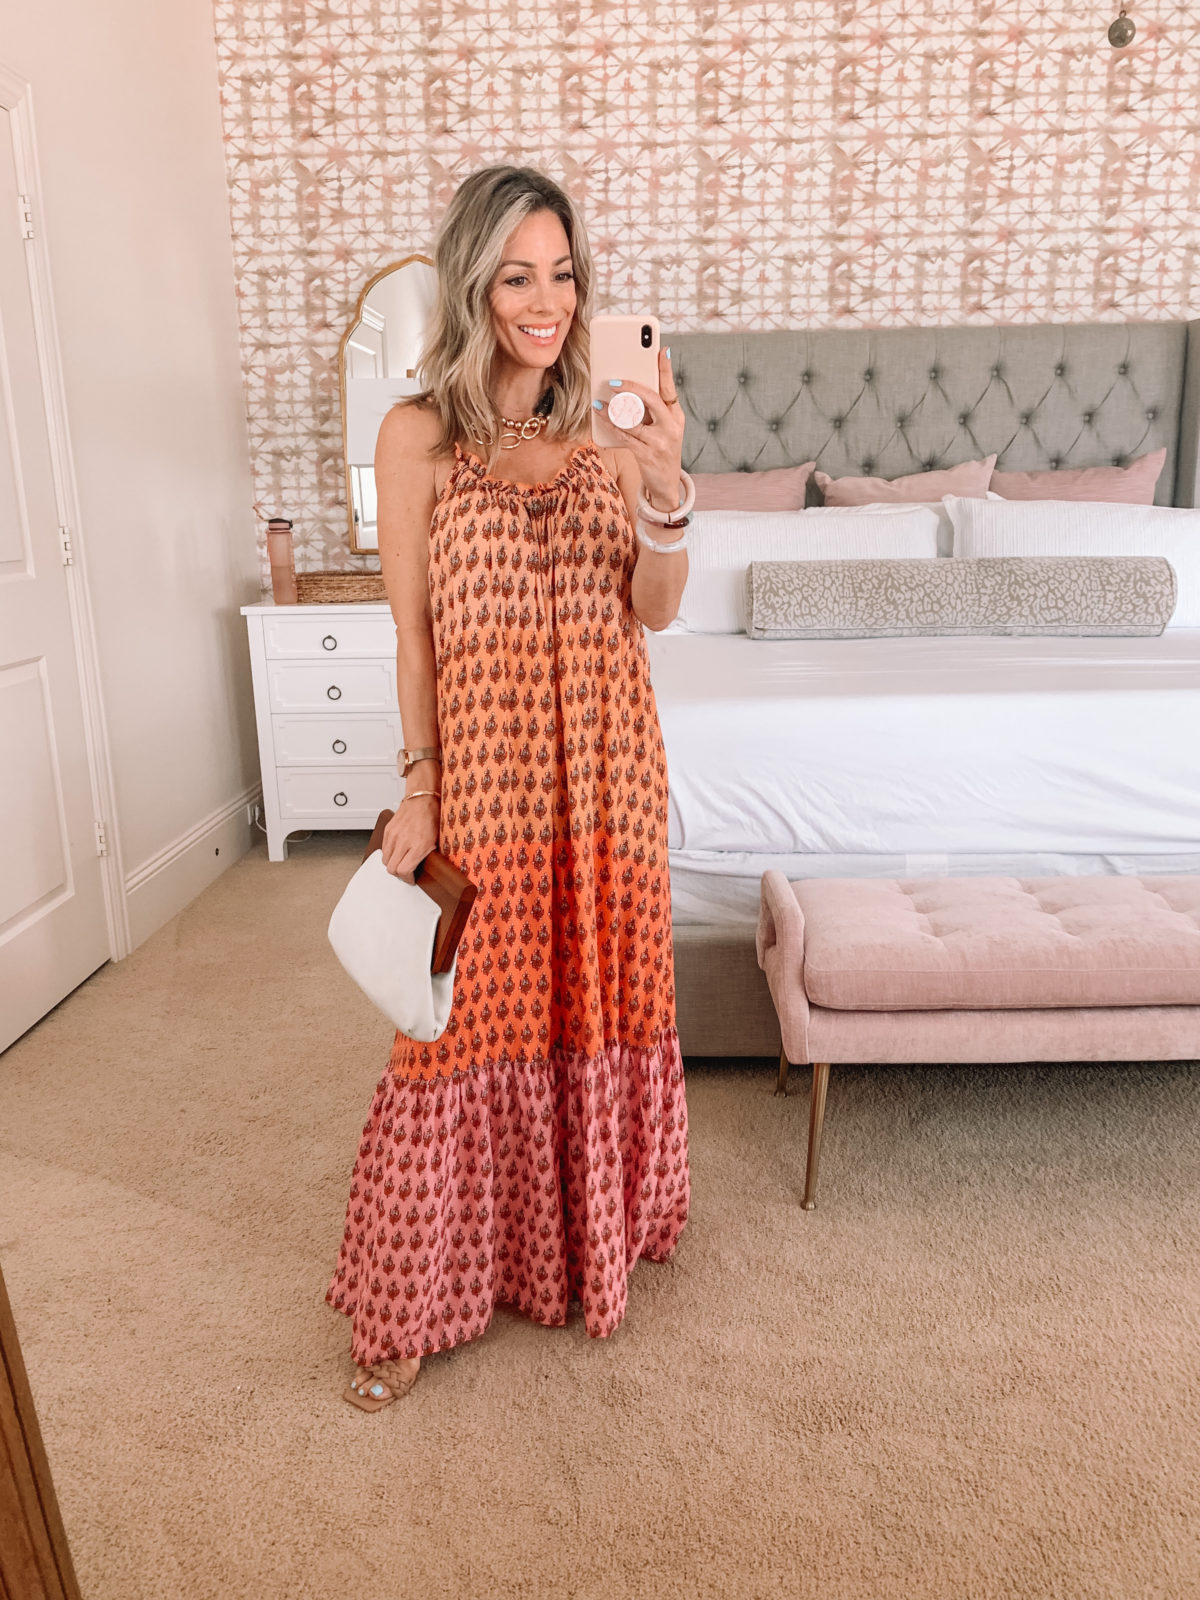 Dressing Room Finds, Maxi Dress and Clutch